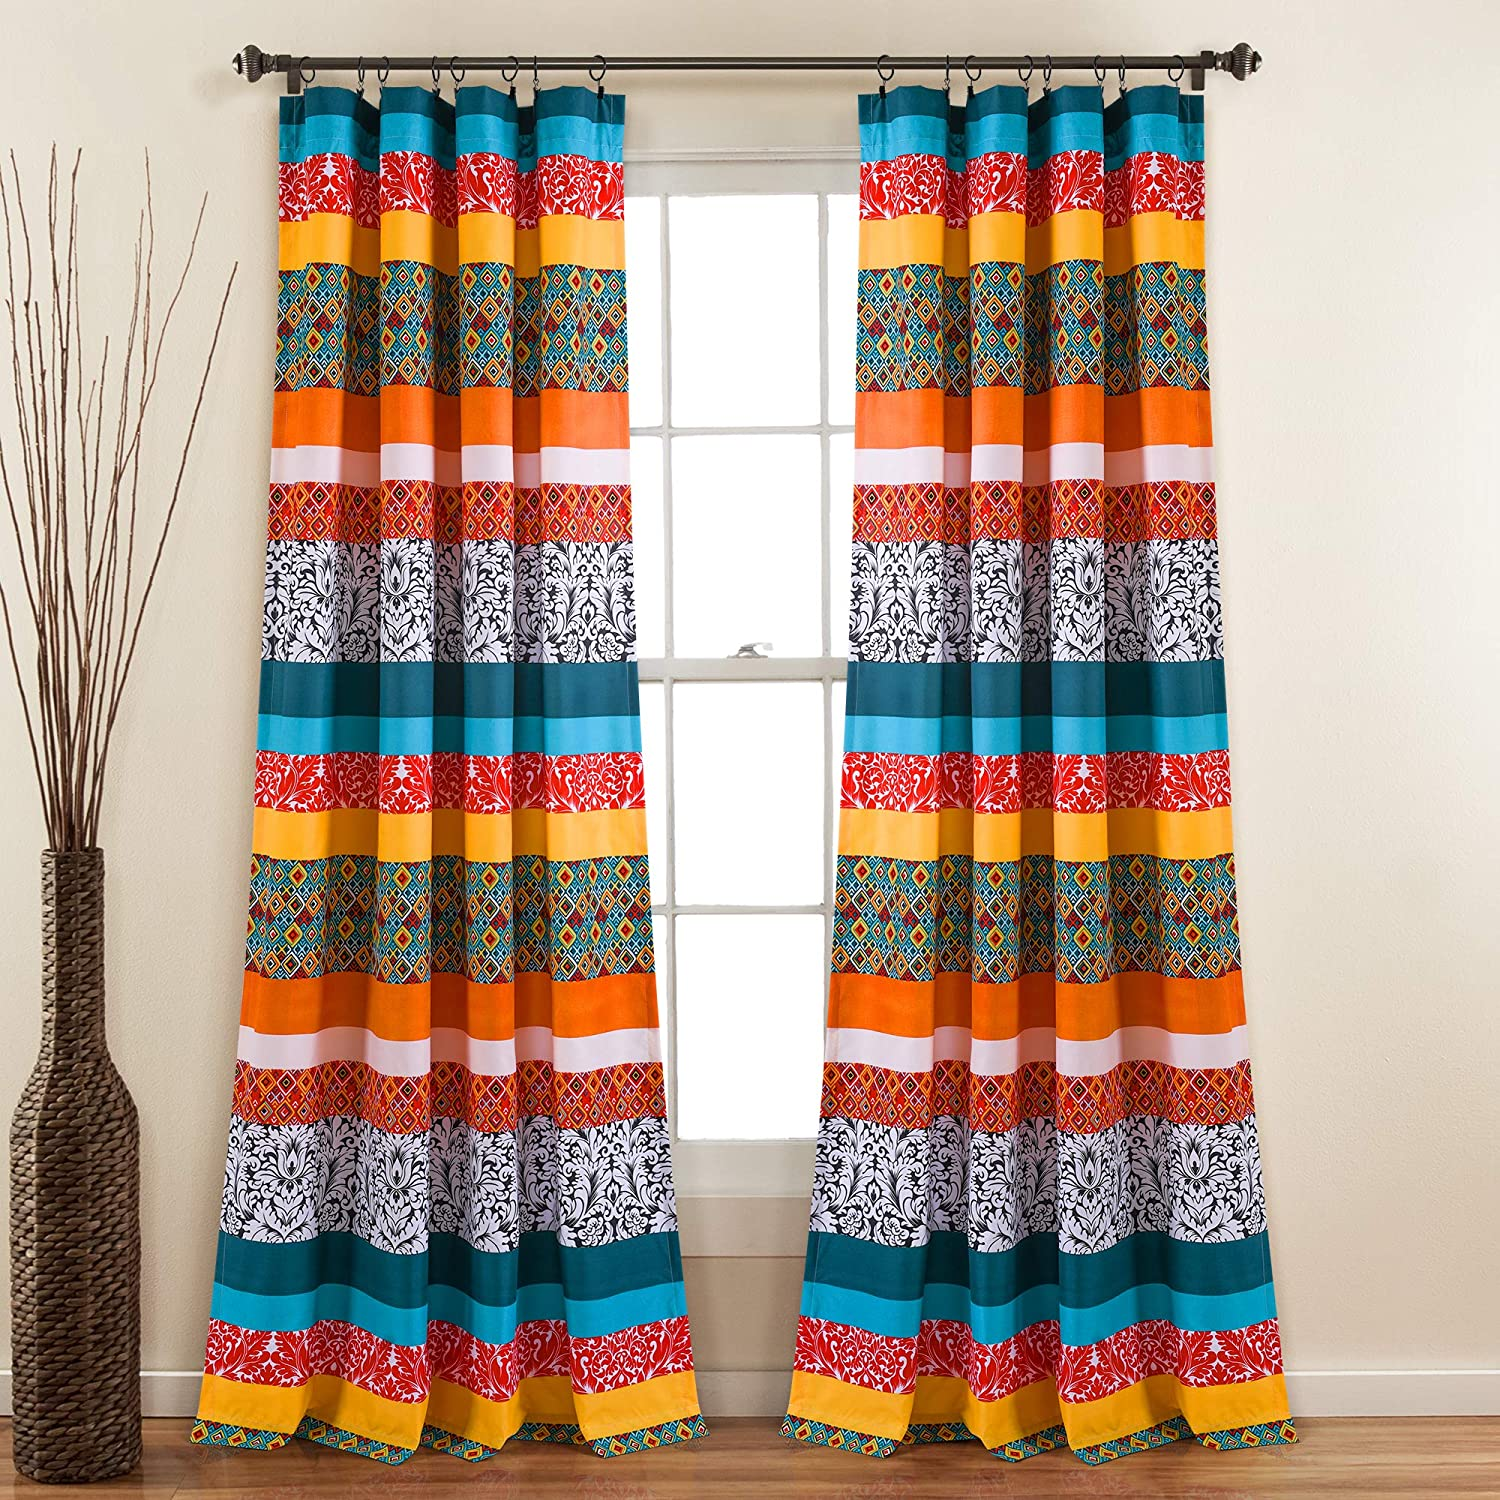 Lush Decor Turquoise and Tangerine Boho Stripe Window Curtain Bohemian Design Panel Pair, 52